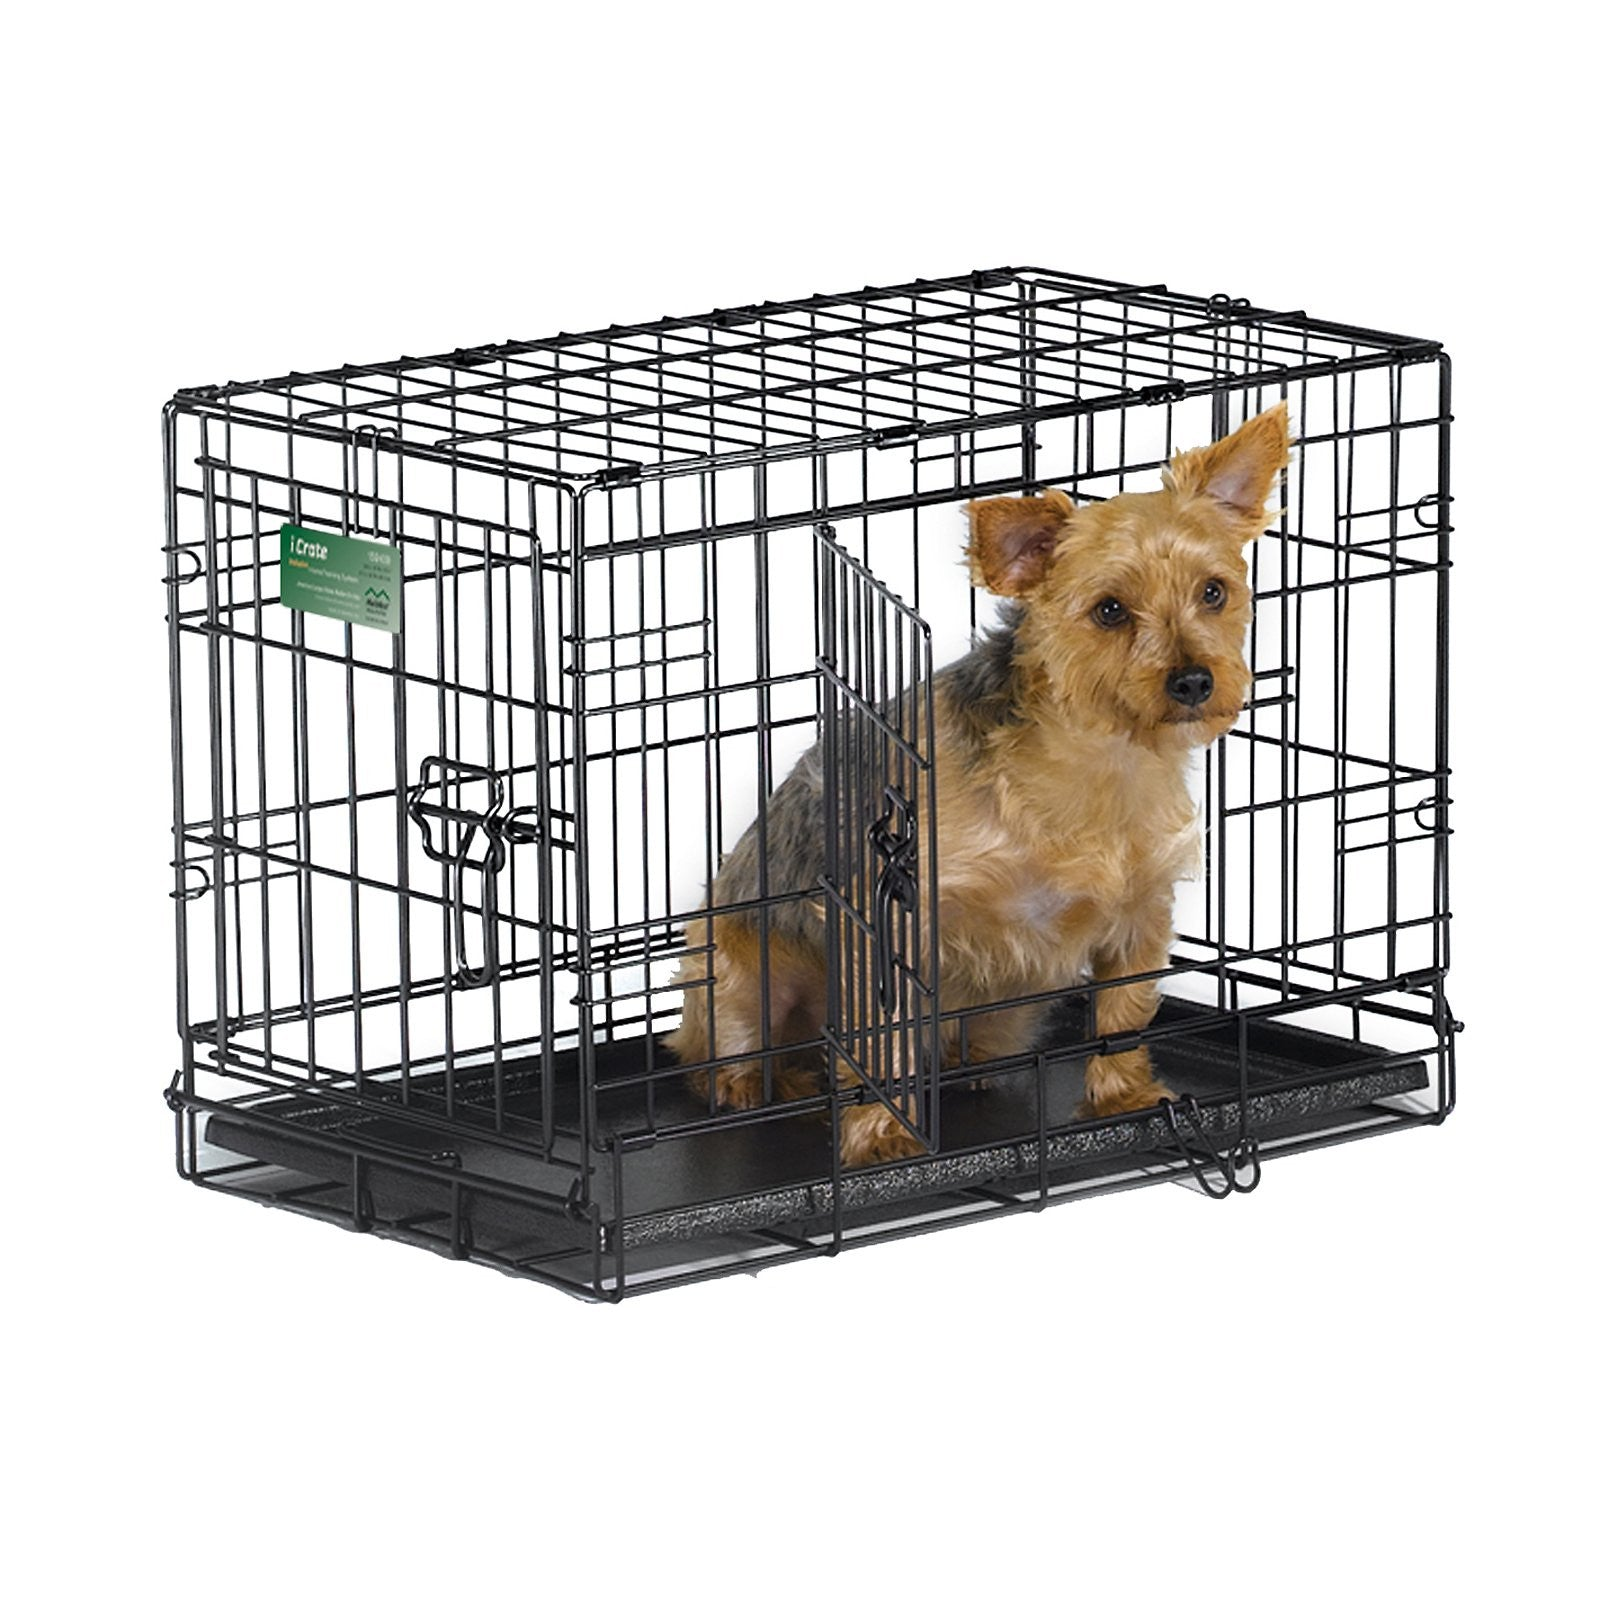 MidWest ICrate Double Door Fold U0026 Carry Dog Crate